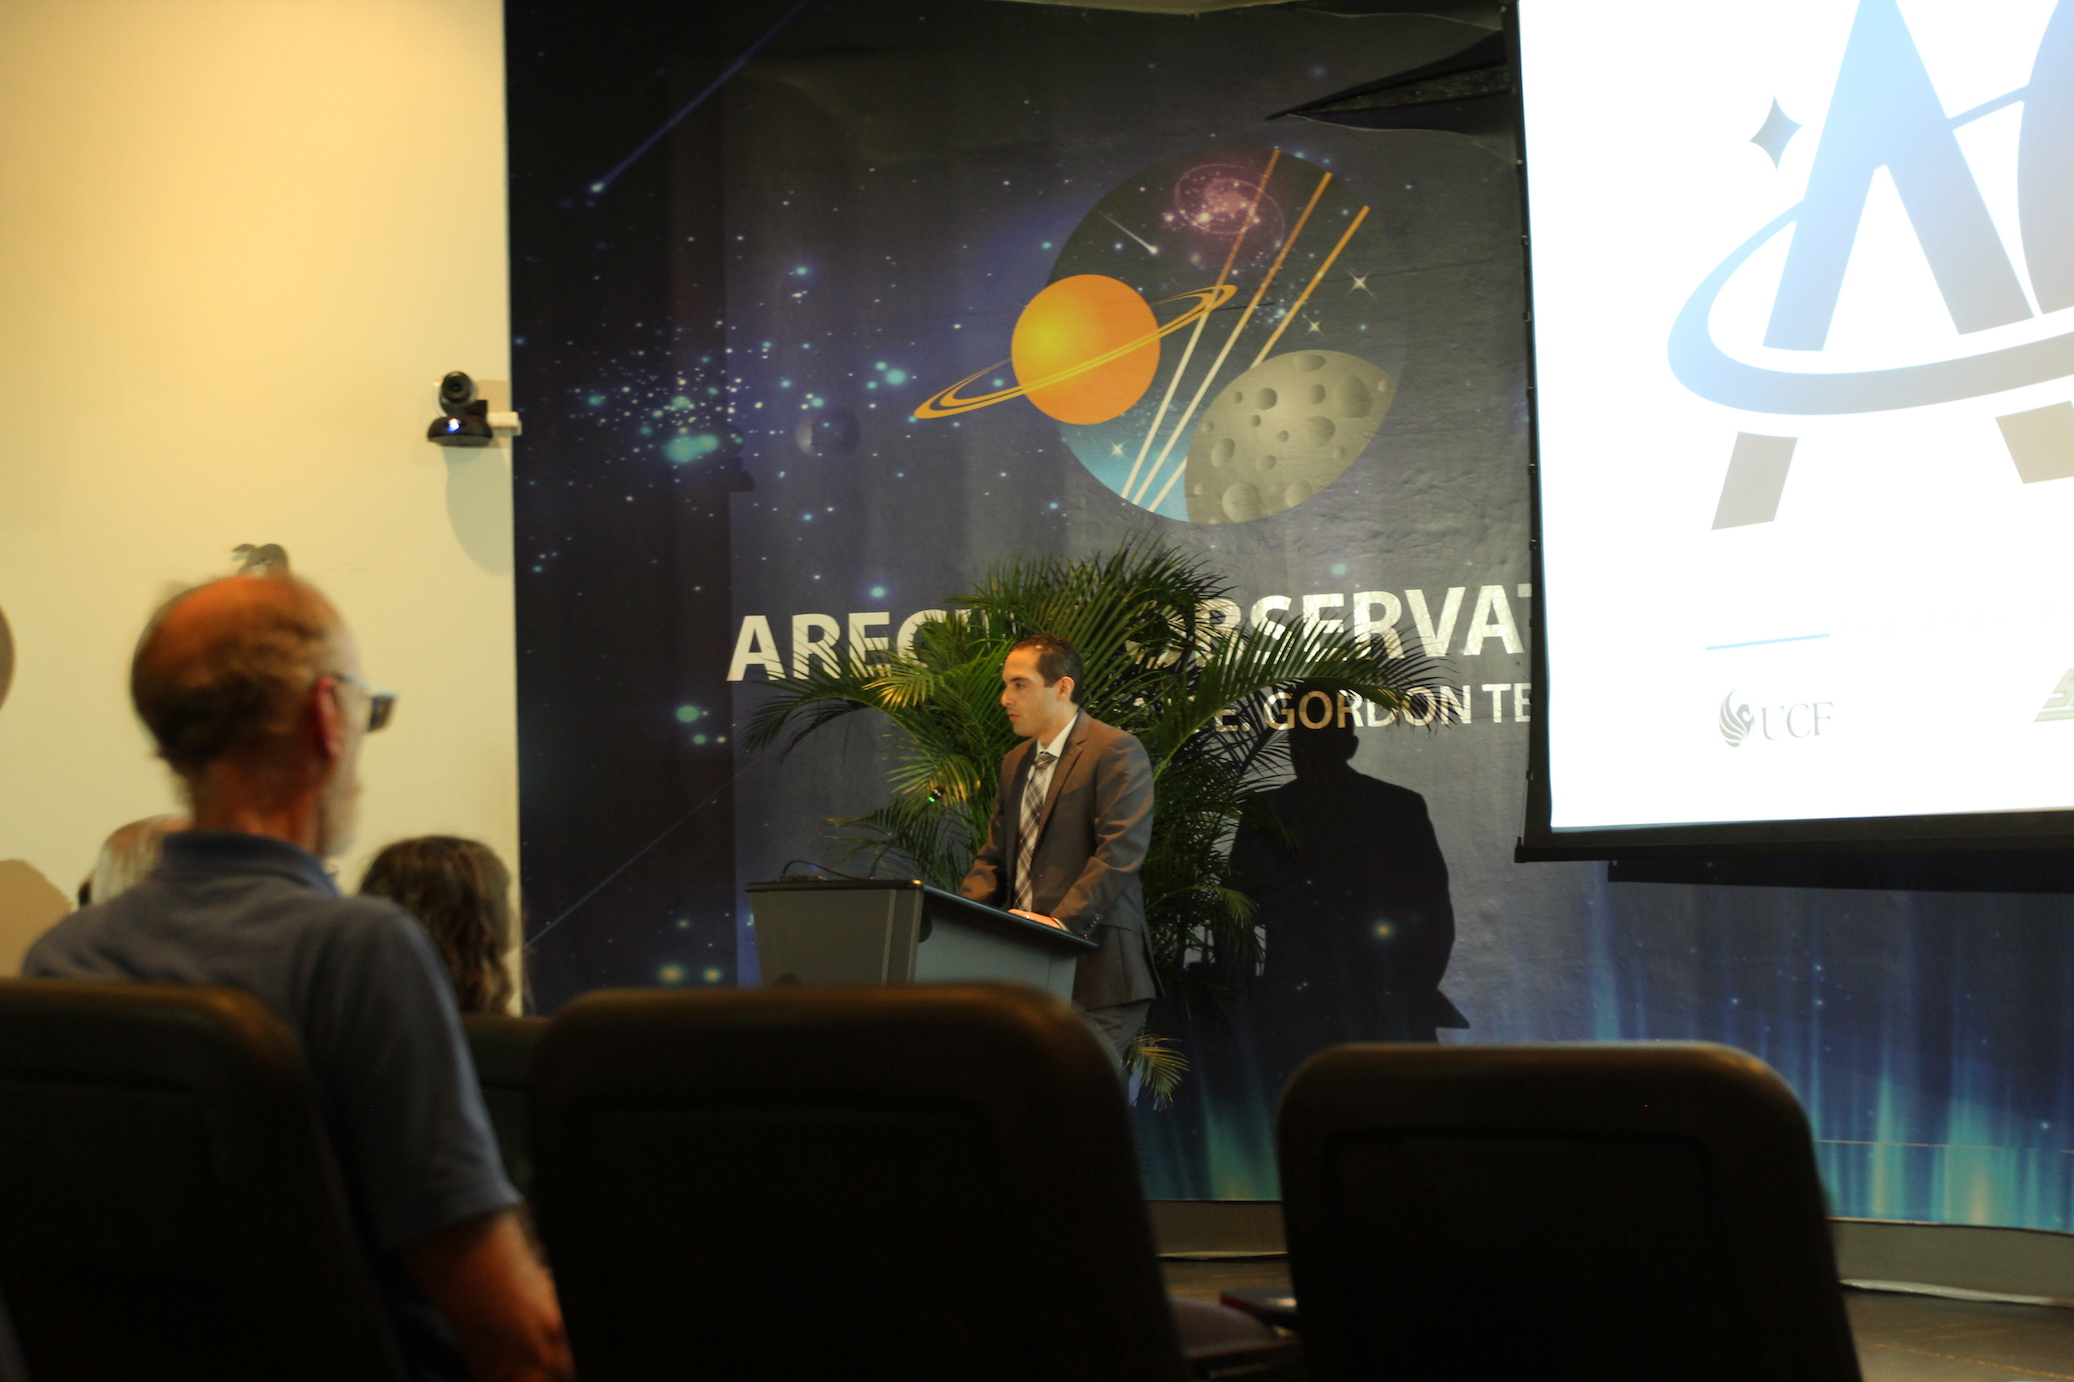 Inauguration Ceremony (UCF, Yang, UMET) | The Arecibo Observatory